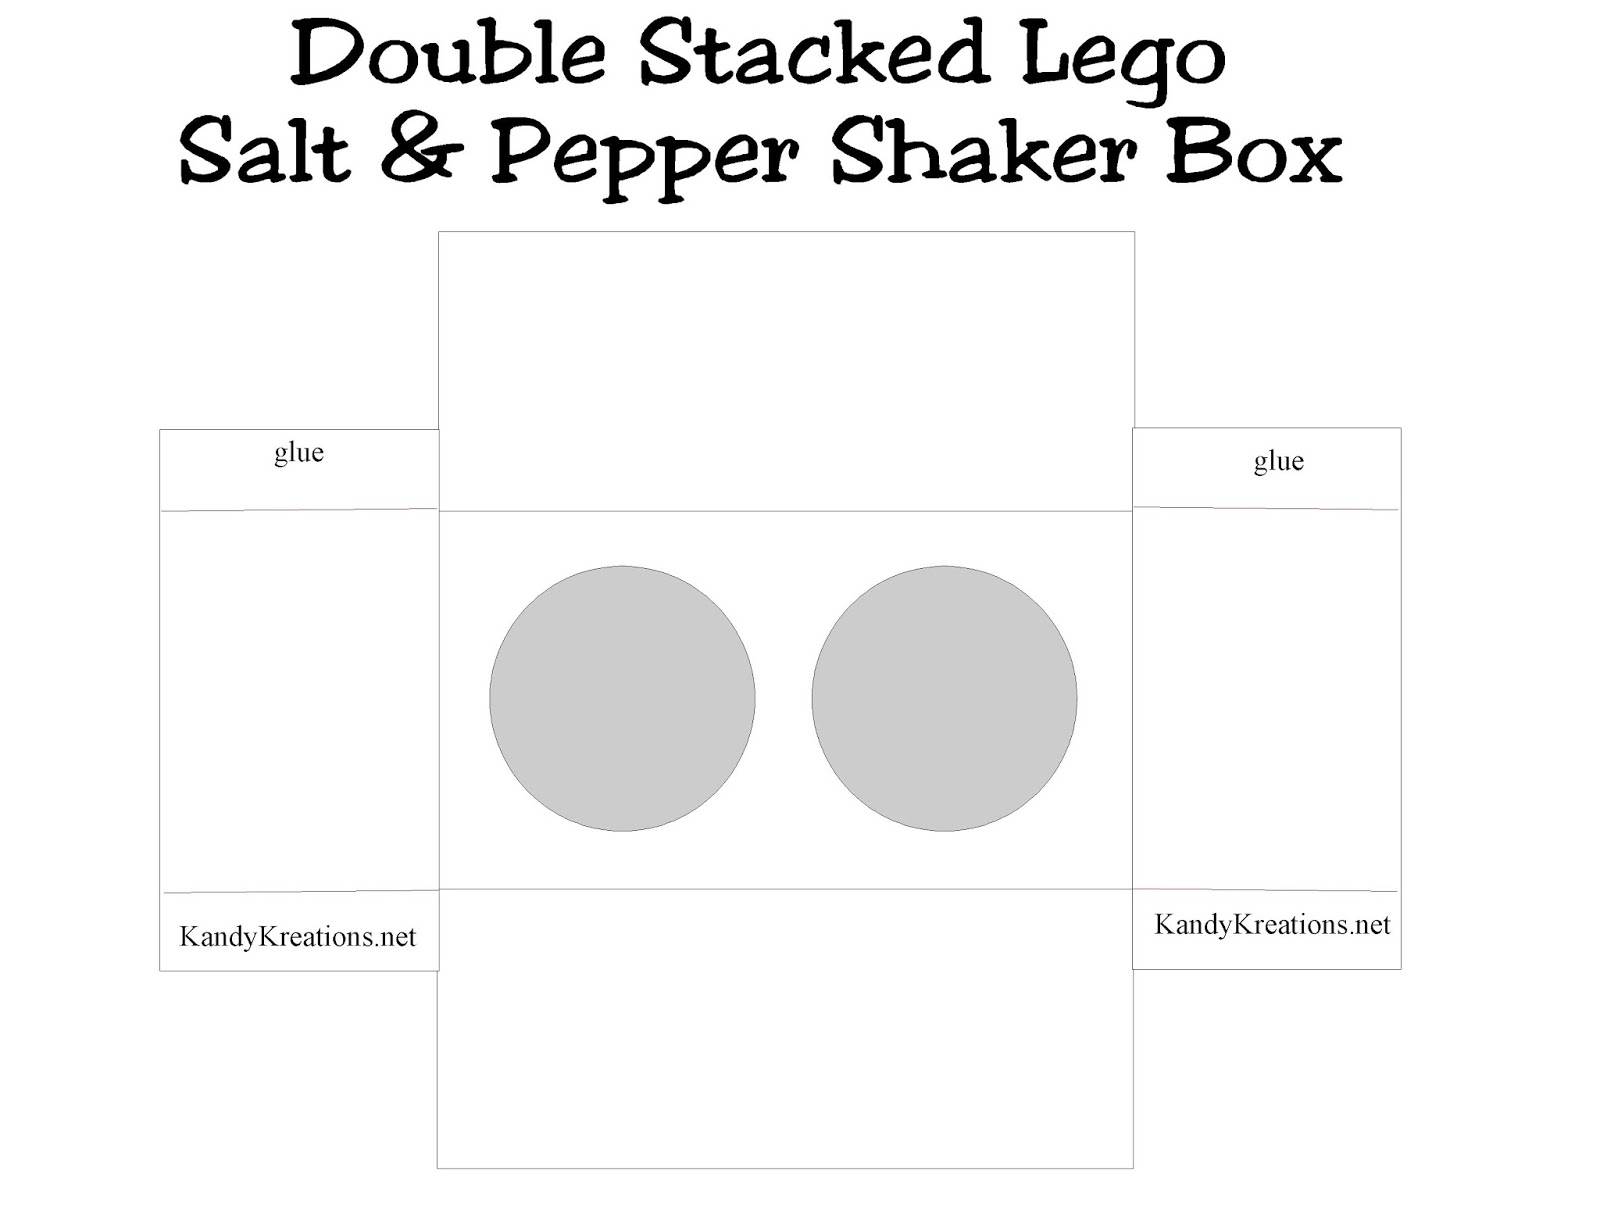 Double Stacked Lego Salt and Pepper Shaker Printable Box